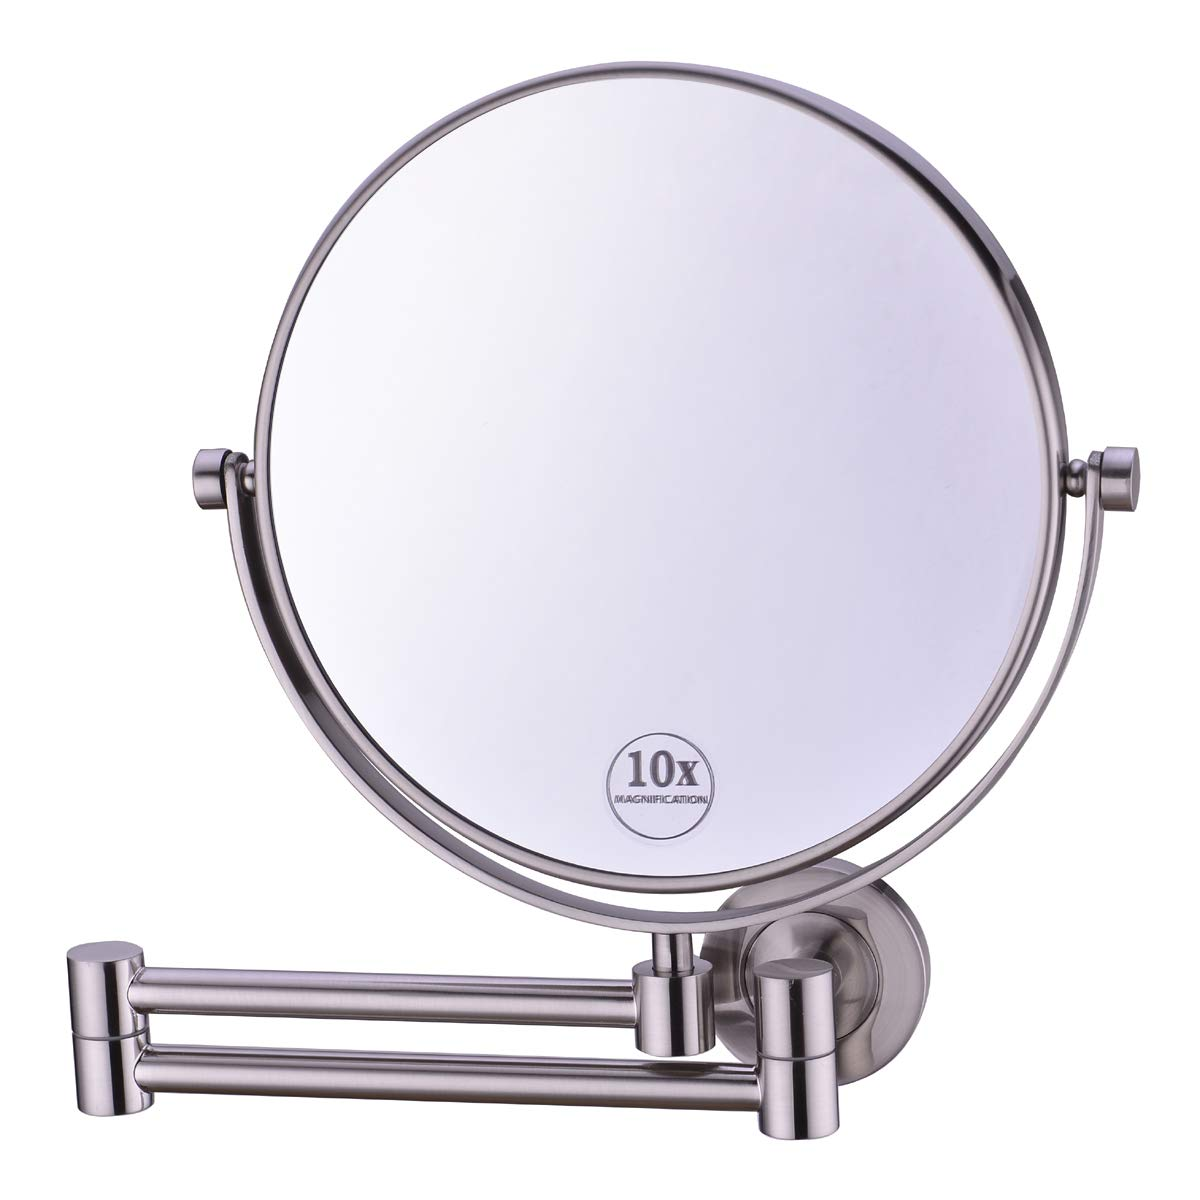 Anpean 8 Inch Double-Sided Swivel Full Brass Wall Mounted Makeup Mirror with 10x Magnification, Brushed Nickel by Anpean